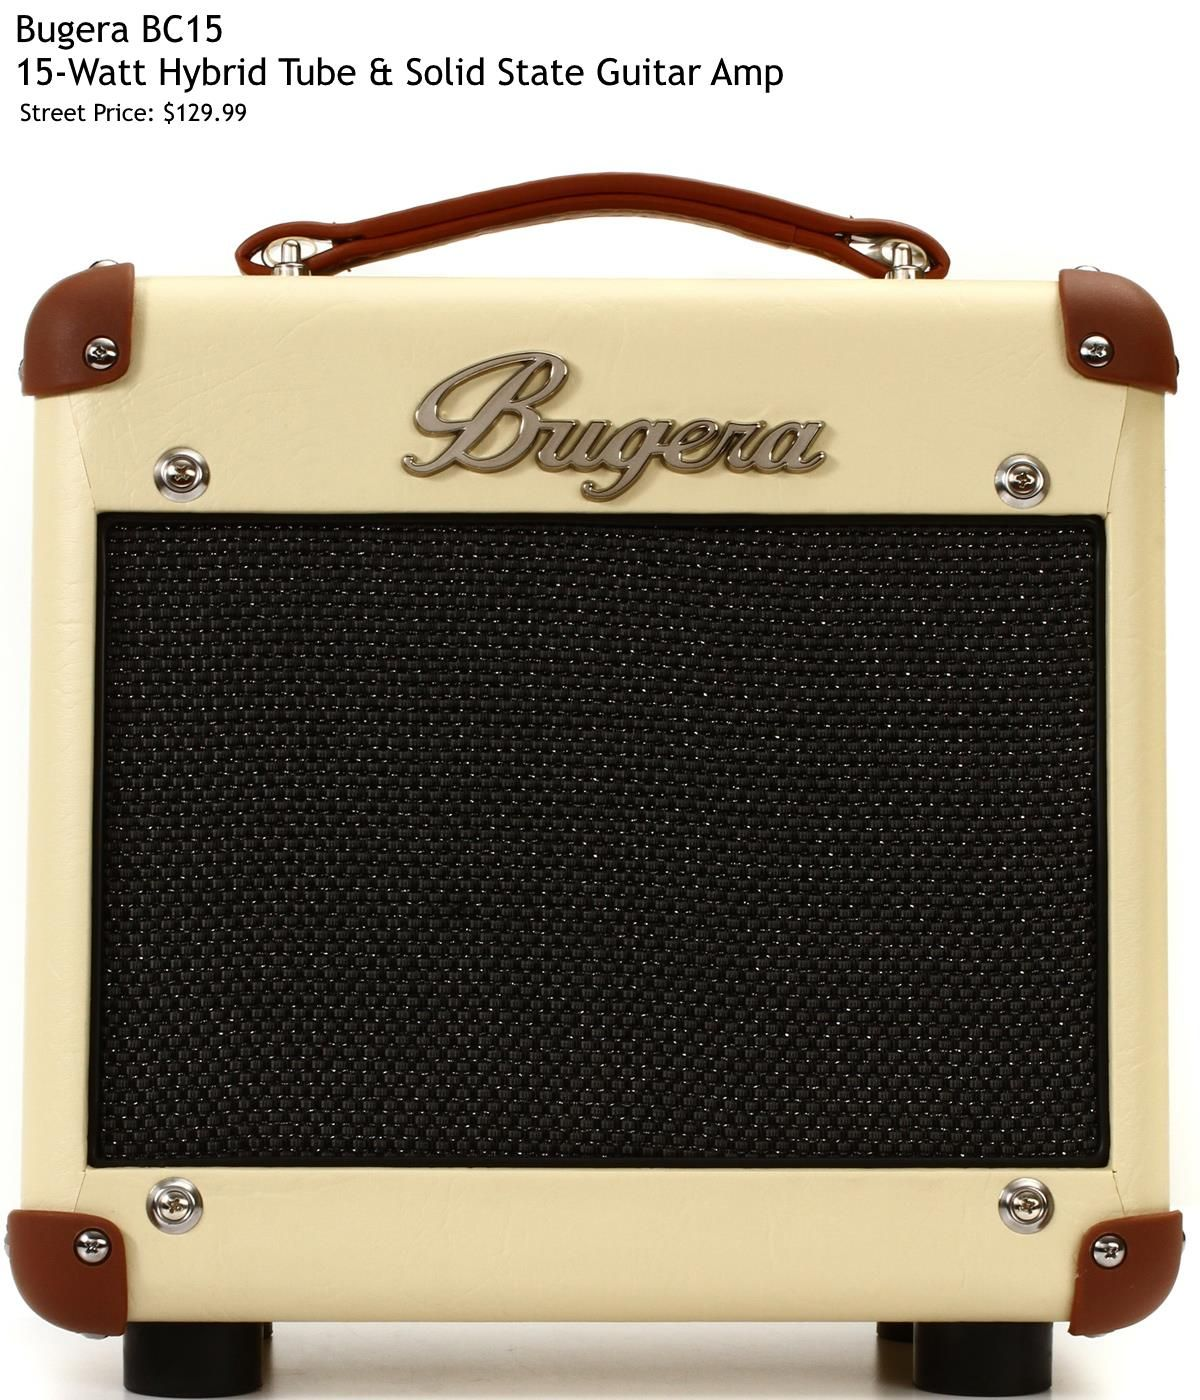 Bugera Bc15 Features 15w Hybrid Amp 8 Speaker Preamp Tube 12ax7 2 Band Eq Inputs 2 X 1 4 Weight 12 Guitar Amp Acoustic Guitar Amp Guitar Rig